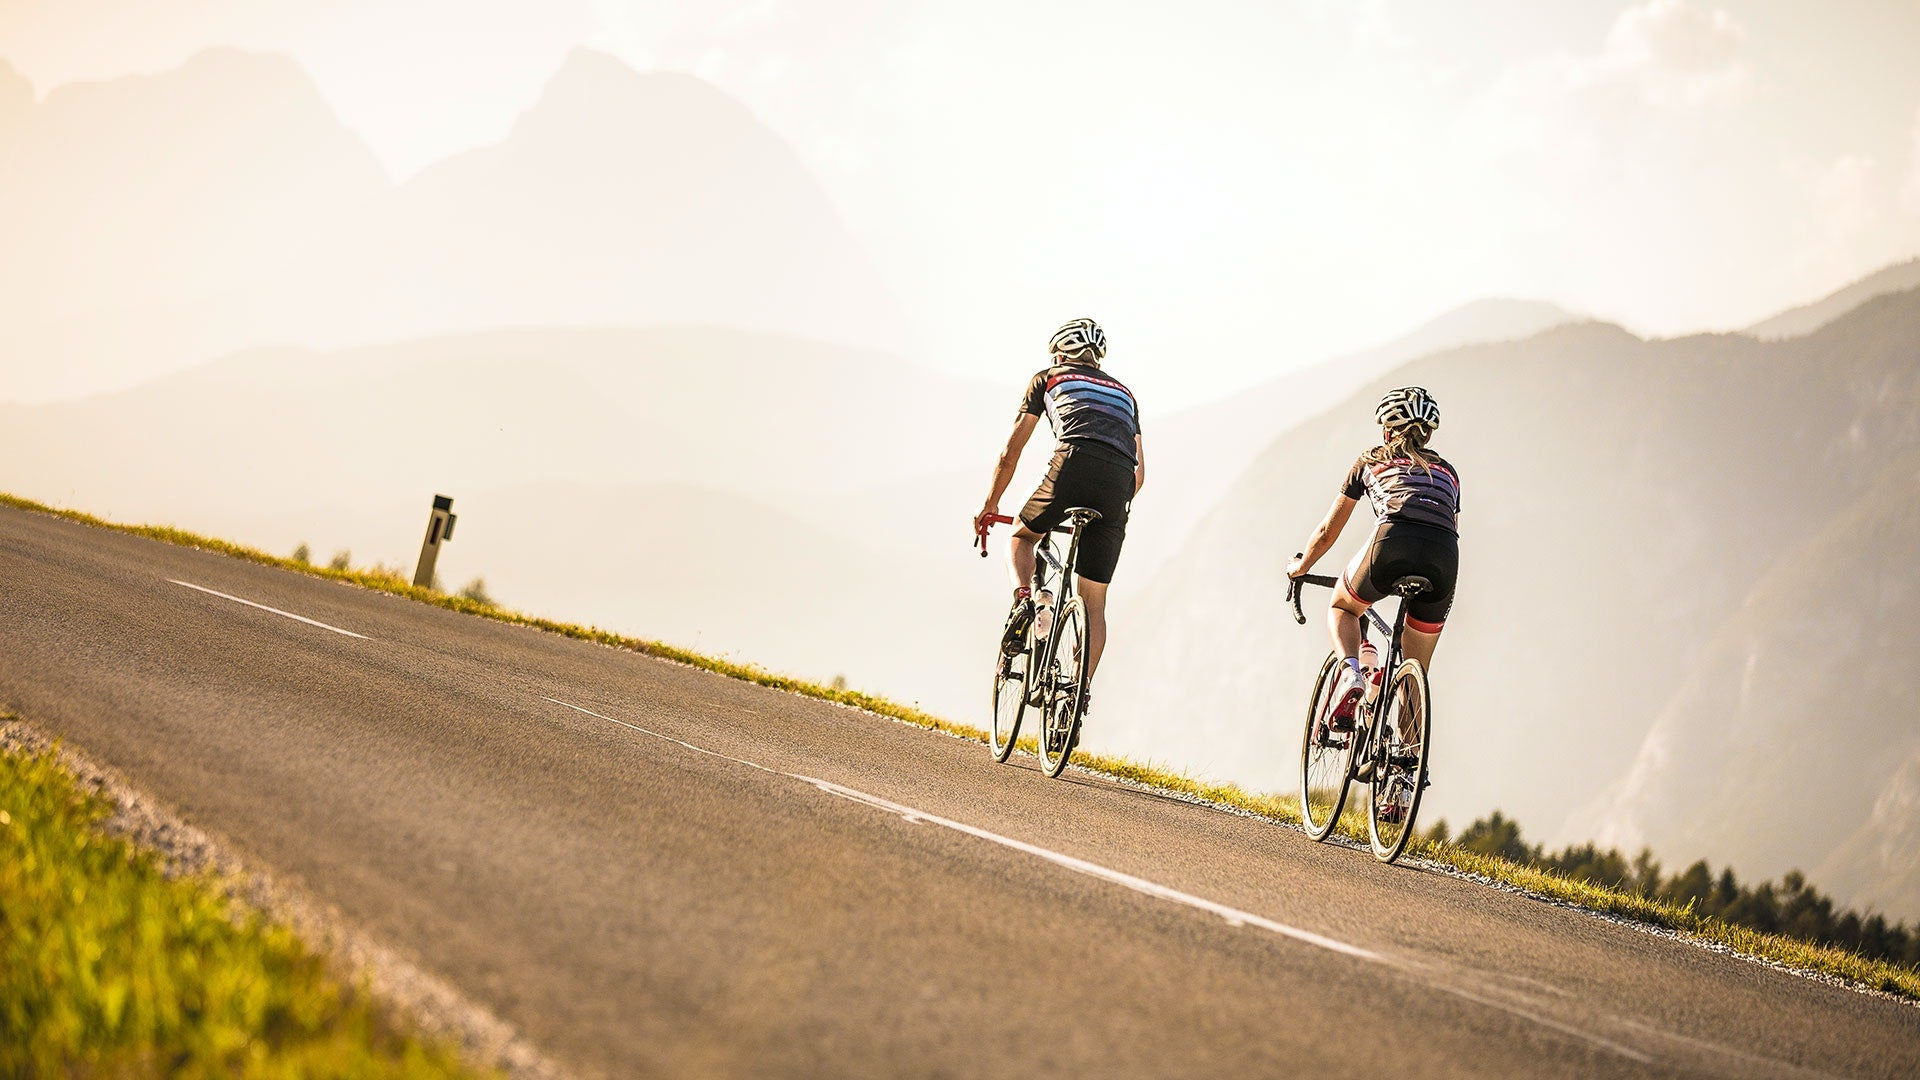 Cycling is a very beneficial aerobic exercise